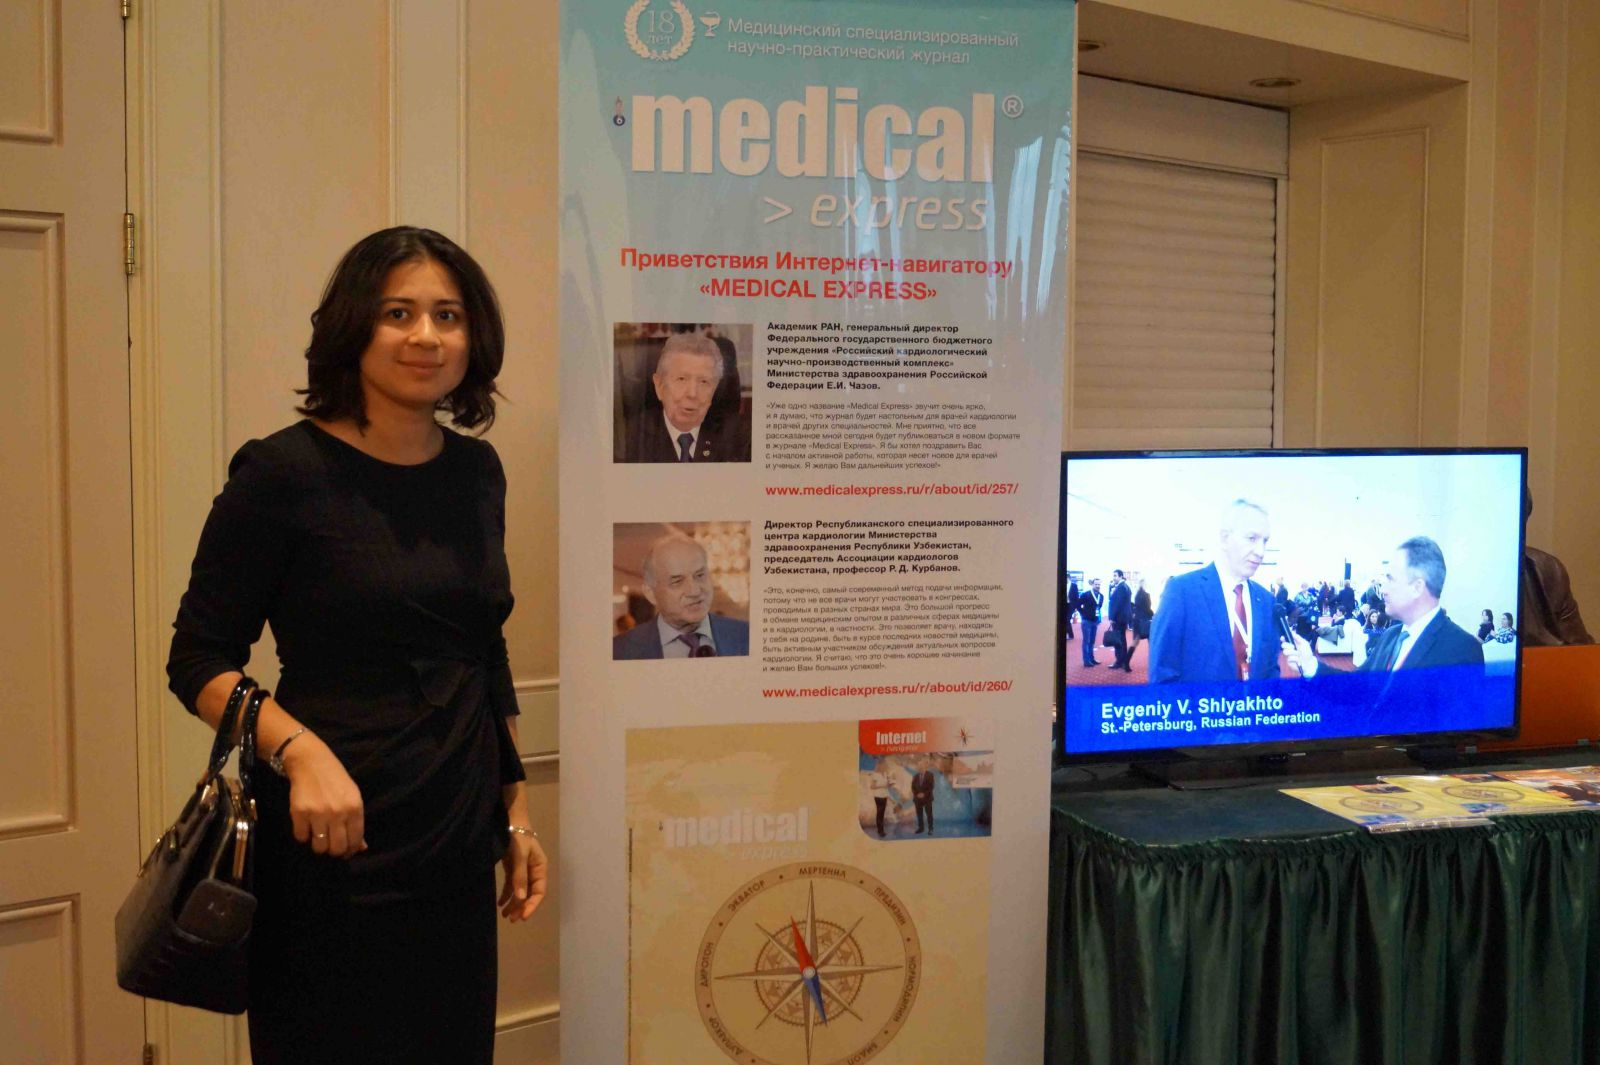 http://medicalexpress.ru/uploads/video-doklady/TERAPIYA%202015/20.JPG